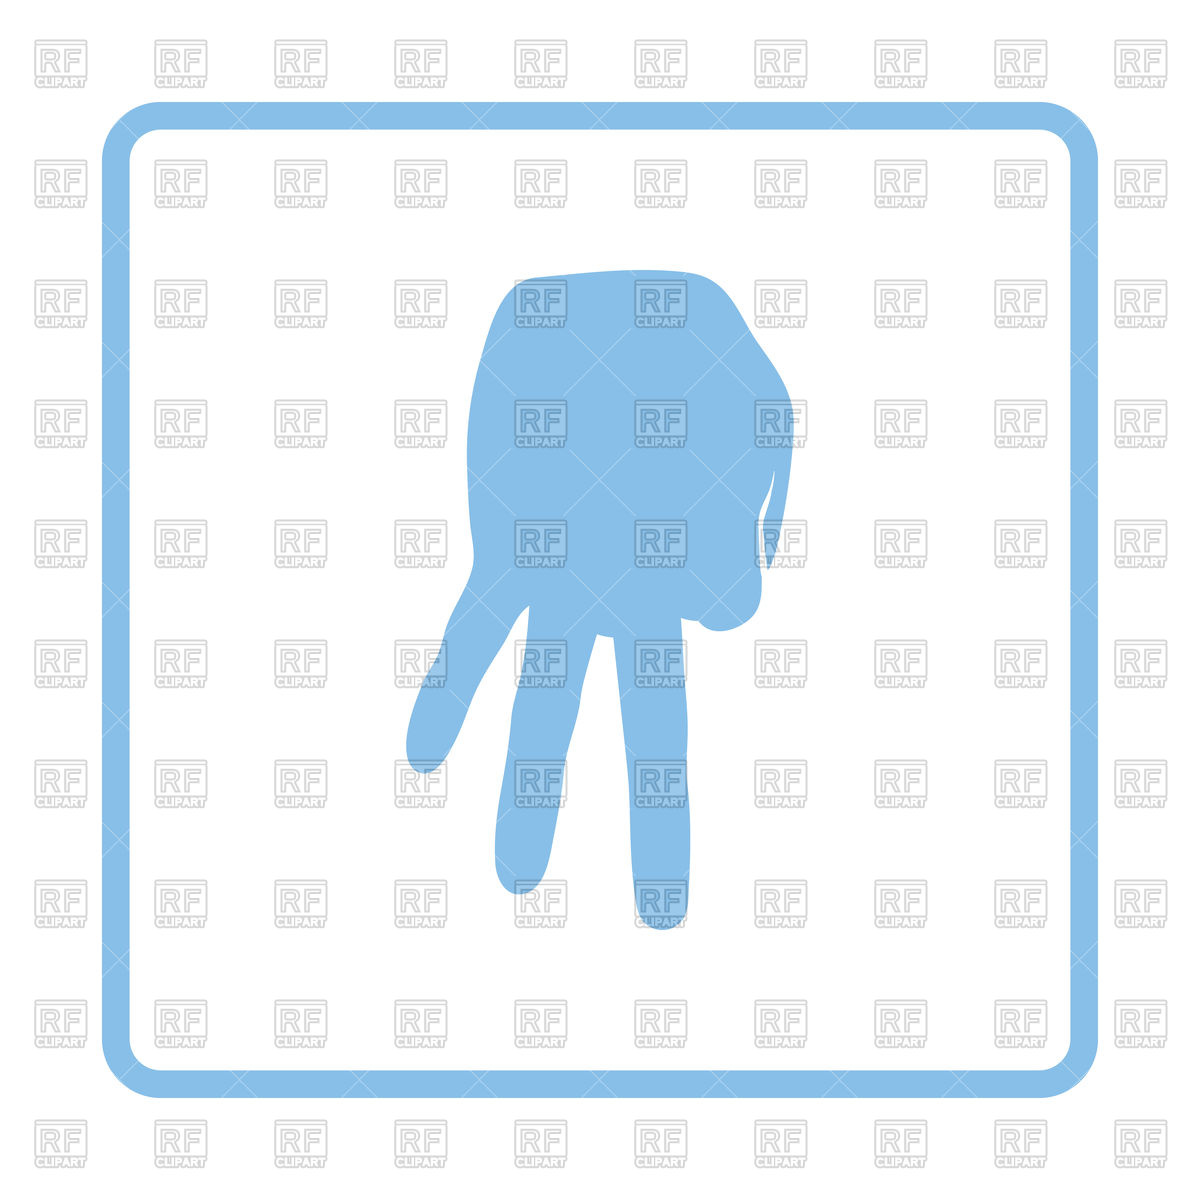 1200x1200 Blue Frame Design Of Baseball Catcher Gesture Icon Royalty Free